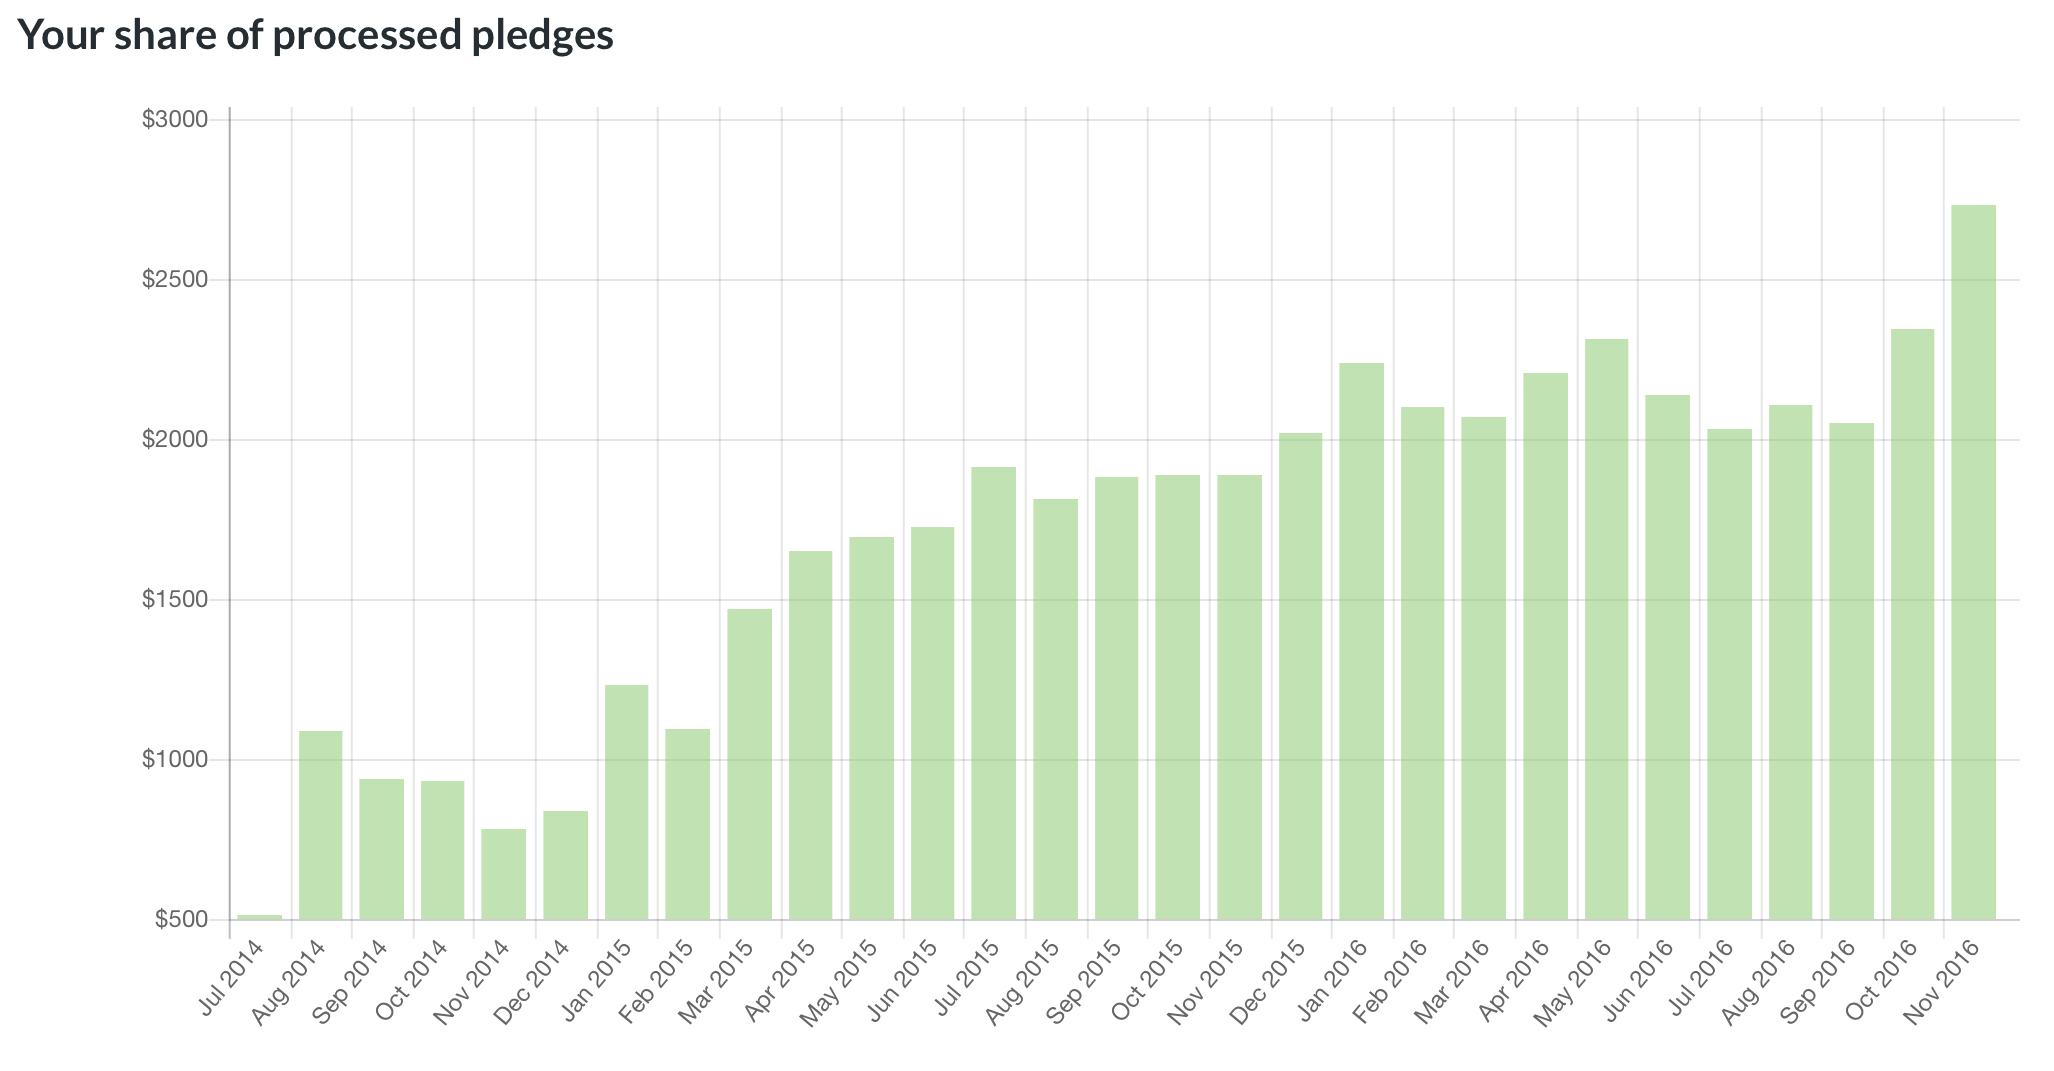 Pledge amounts shown for the current month are not final.